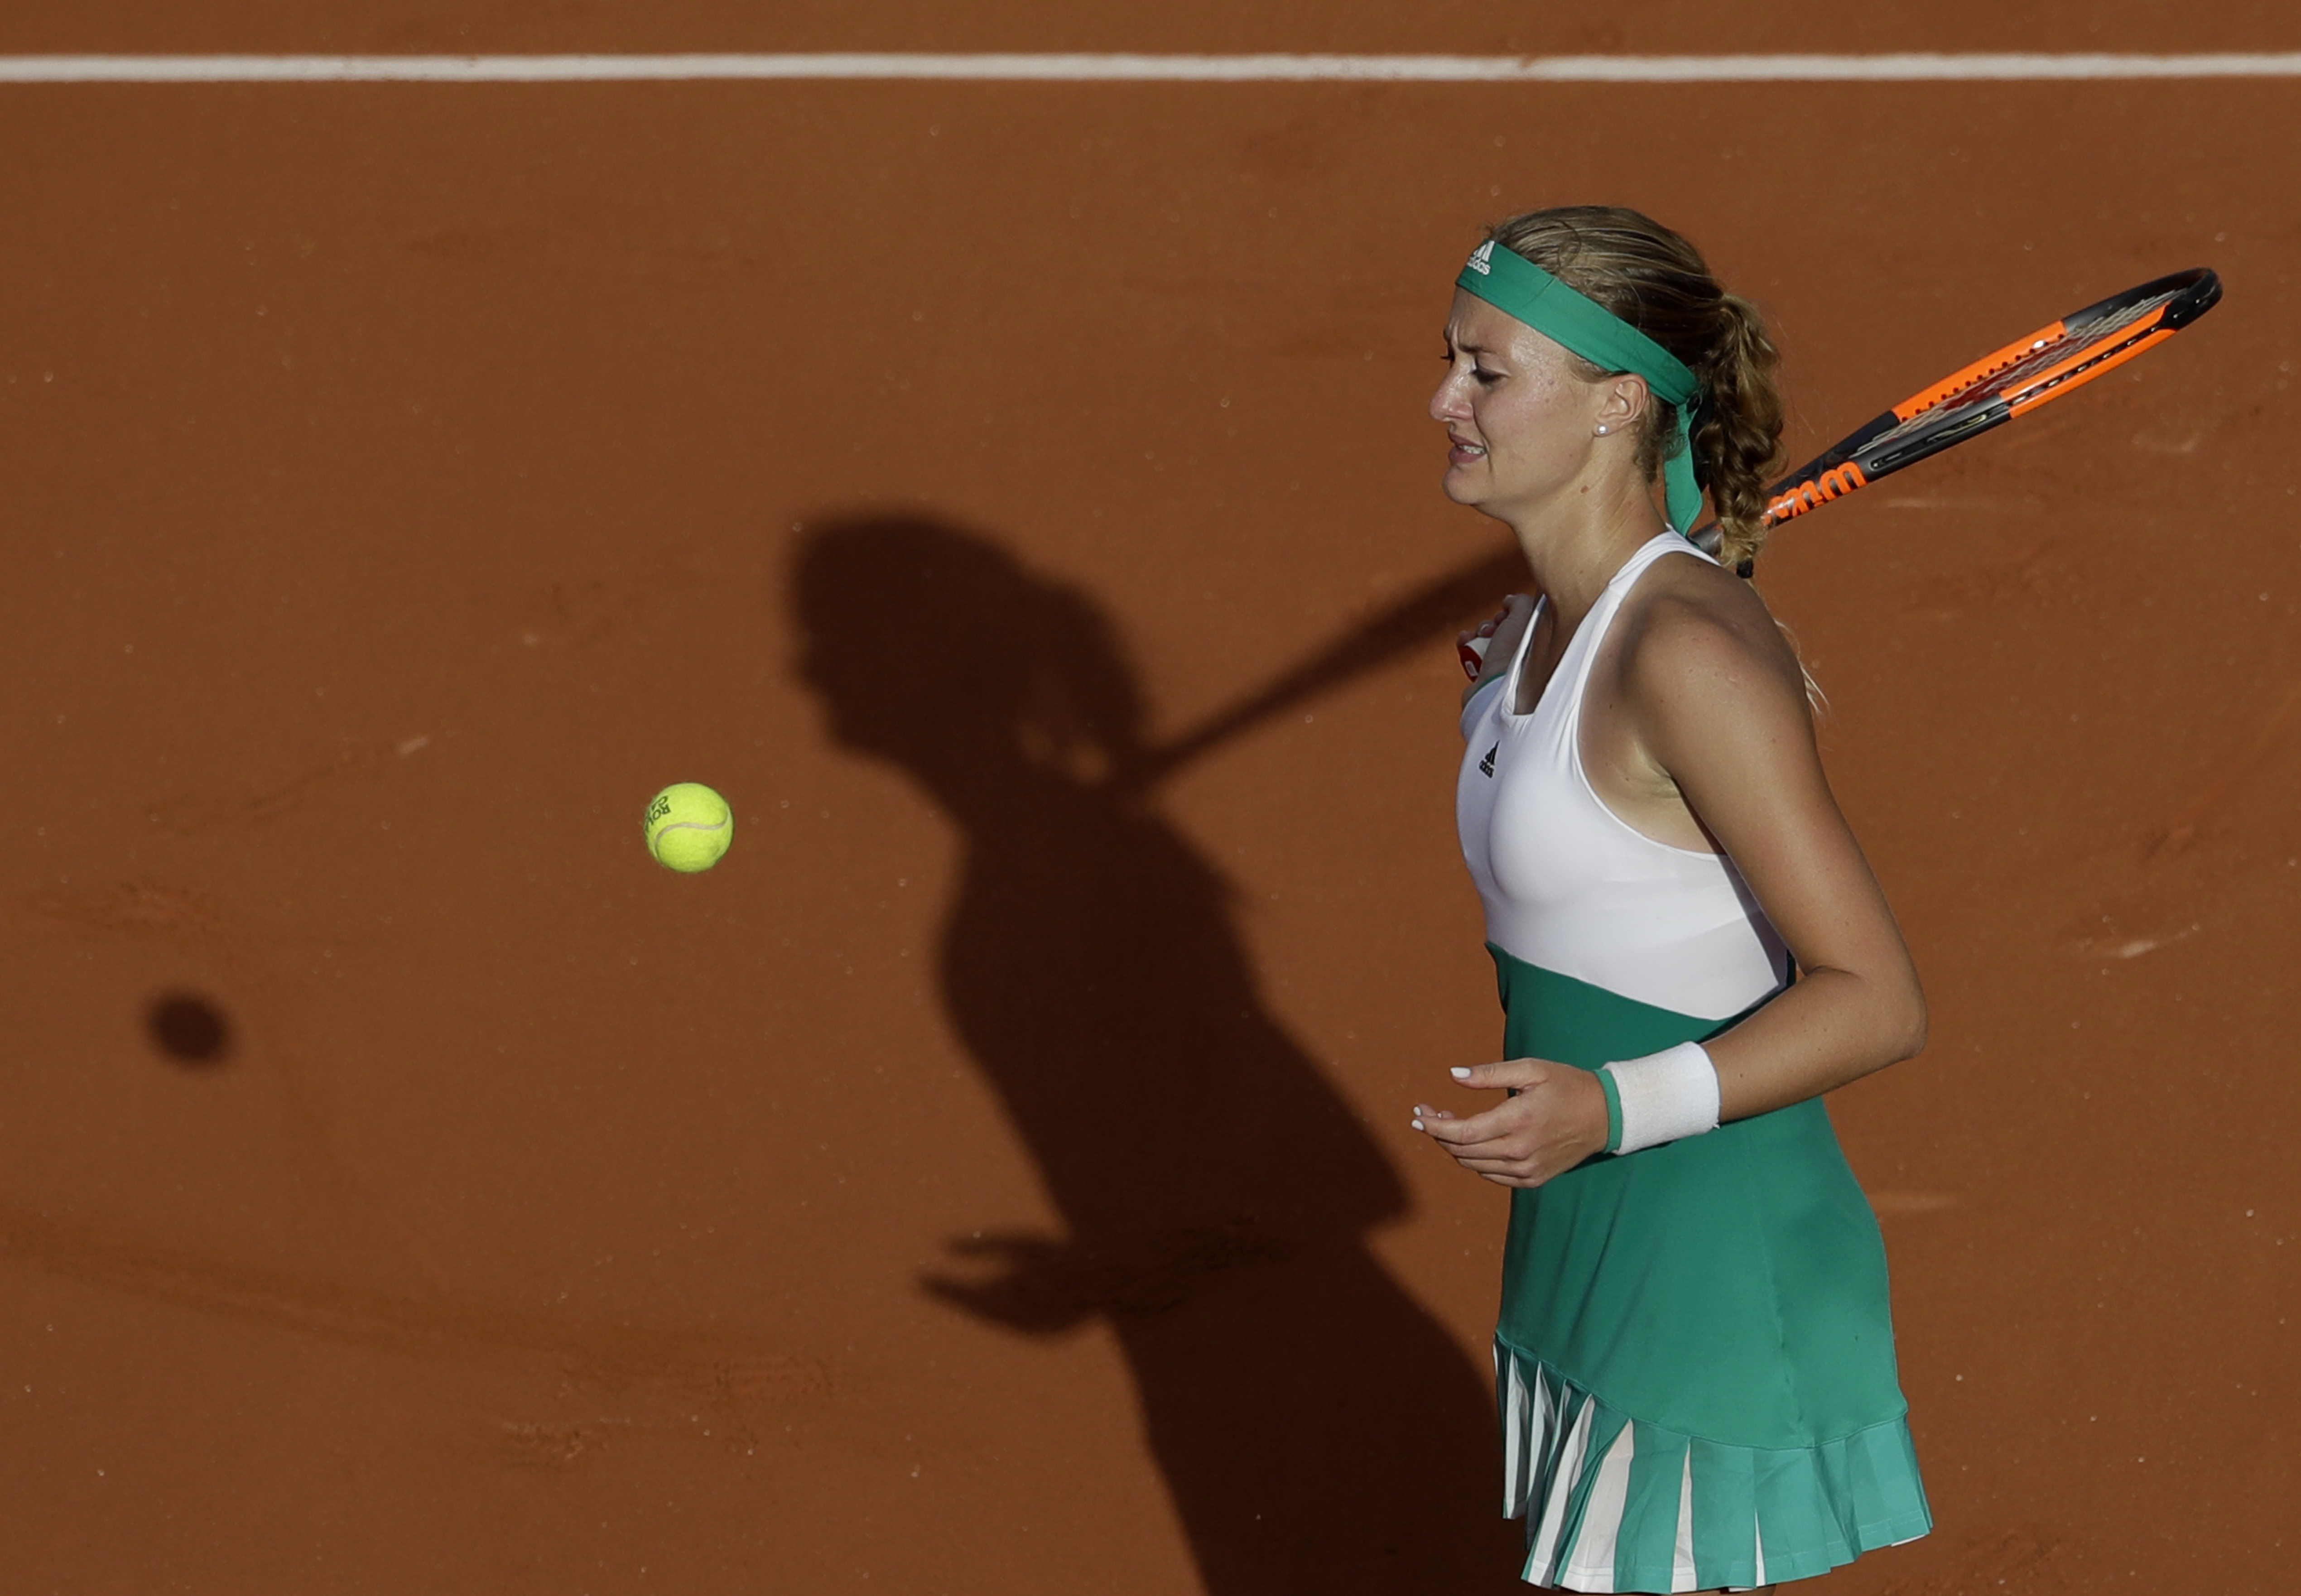 France's Kristina Mladenovic reacts as she defeats USA's Jennifer Brady in the first round of the French Open tennis tournament at the Roland Garros stadium, Monday, May 29, 2017 in Paris. (AP Photo/Petr David Josek)